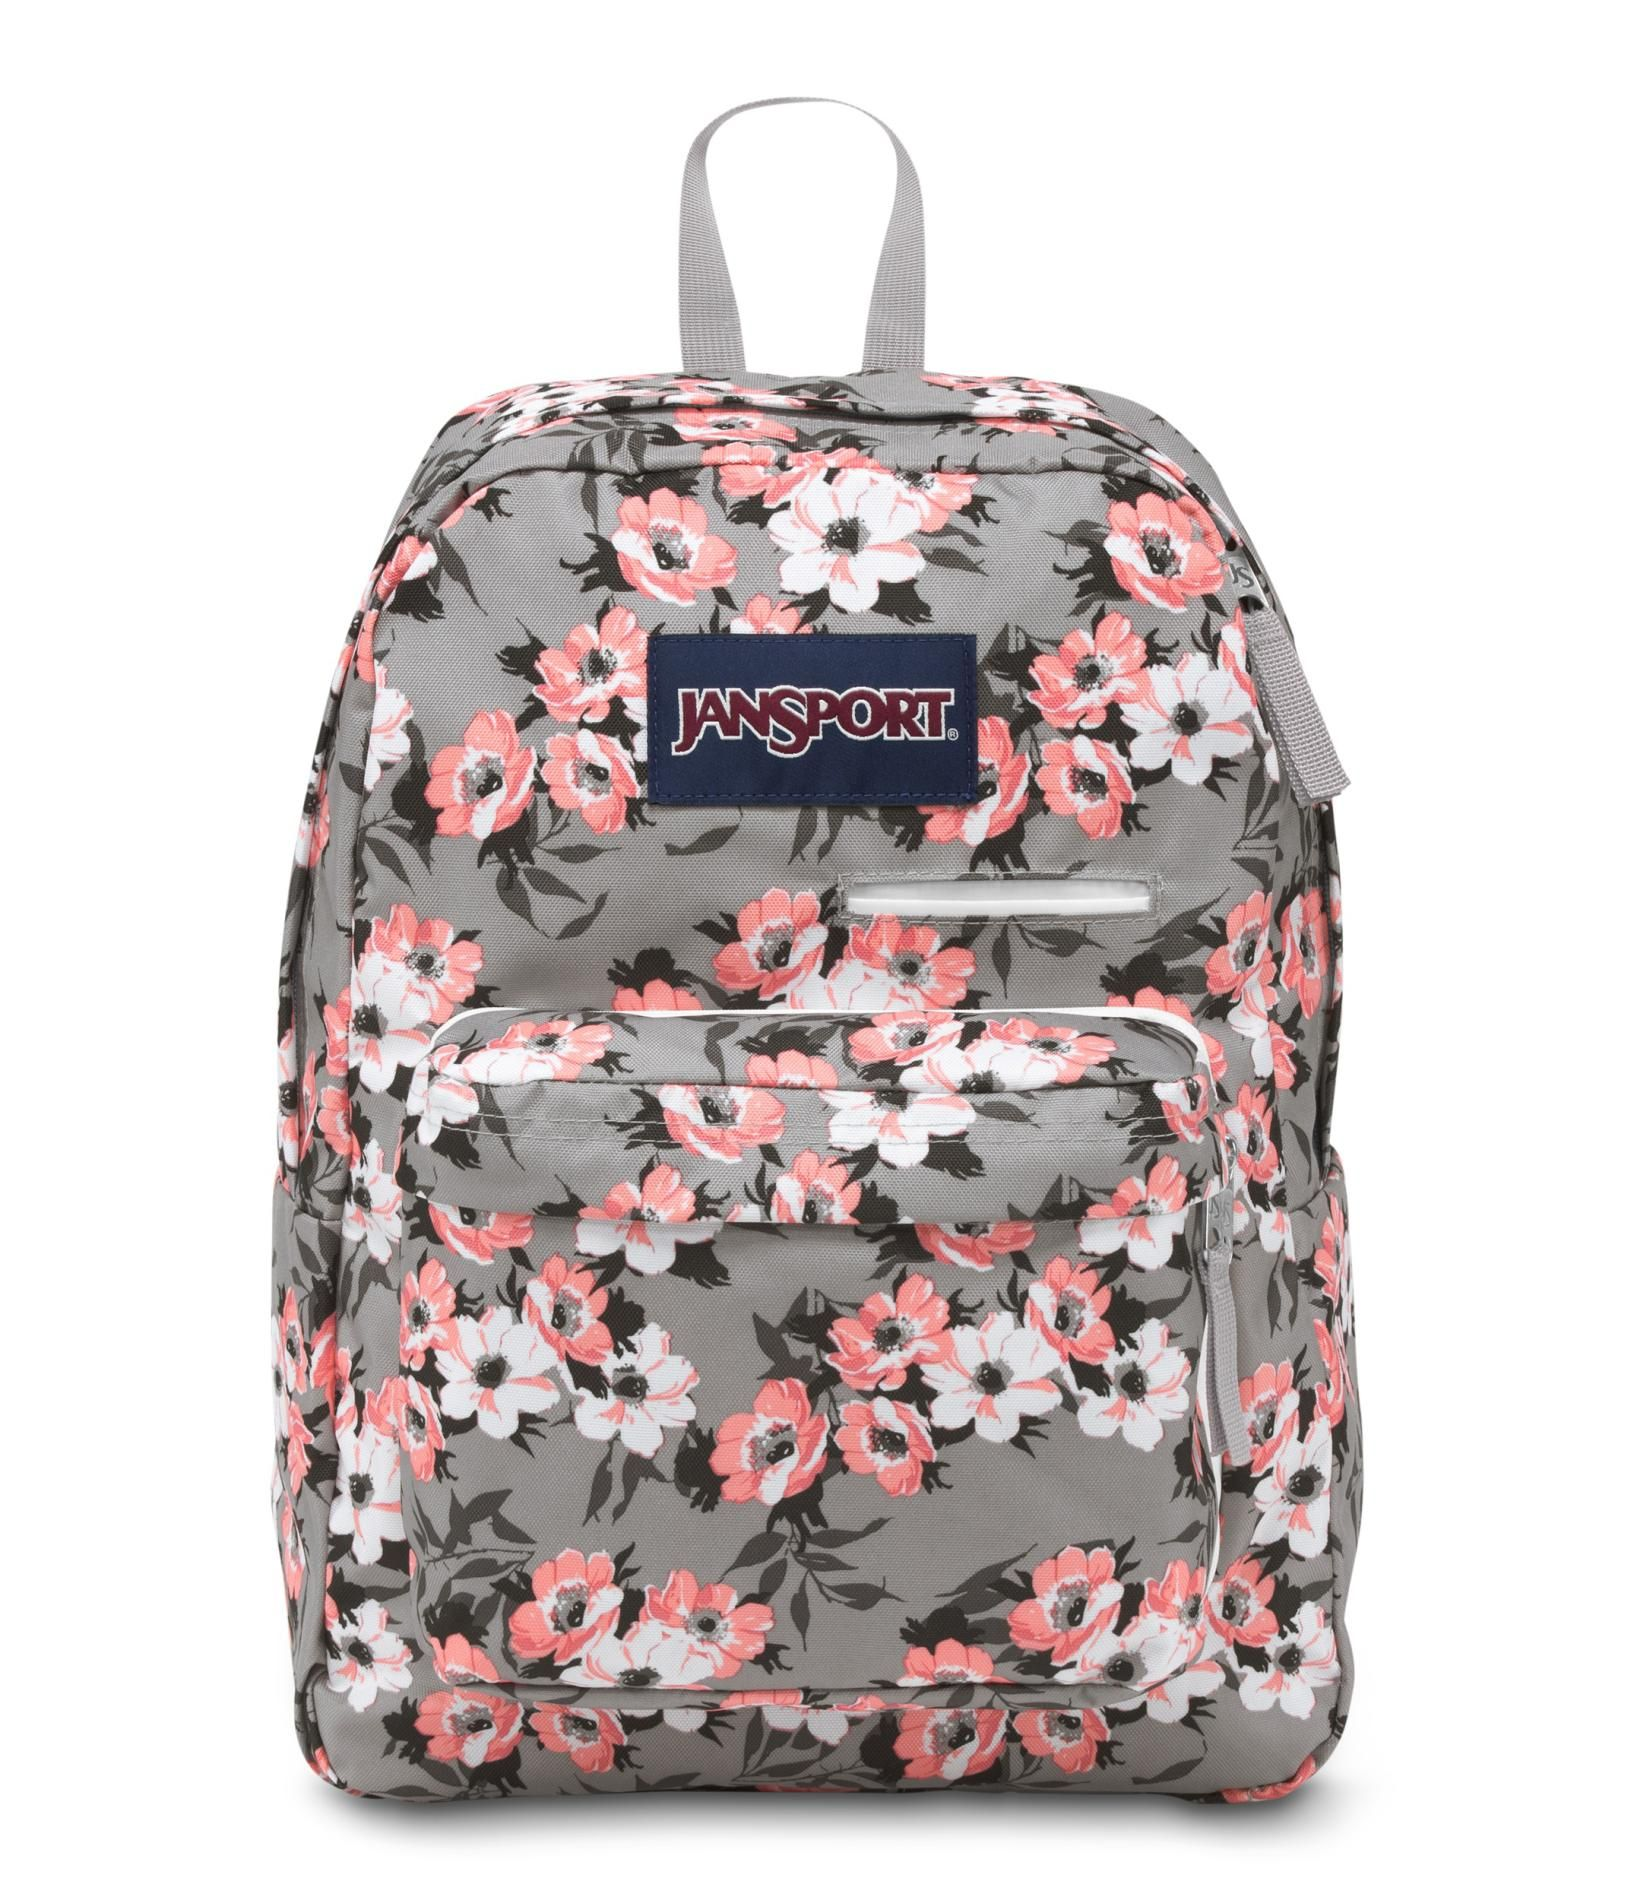 Sears - Online | Back to School | Pinterest | JanSport, Floral and ...